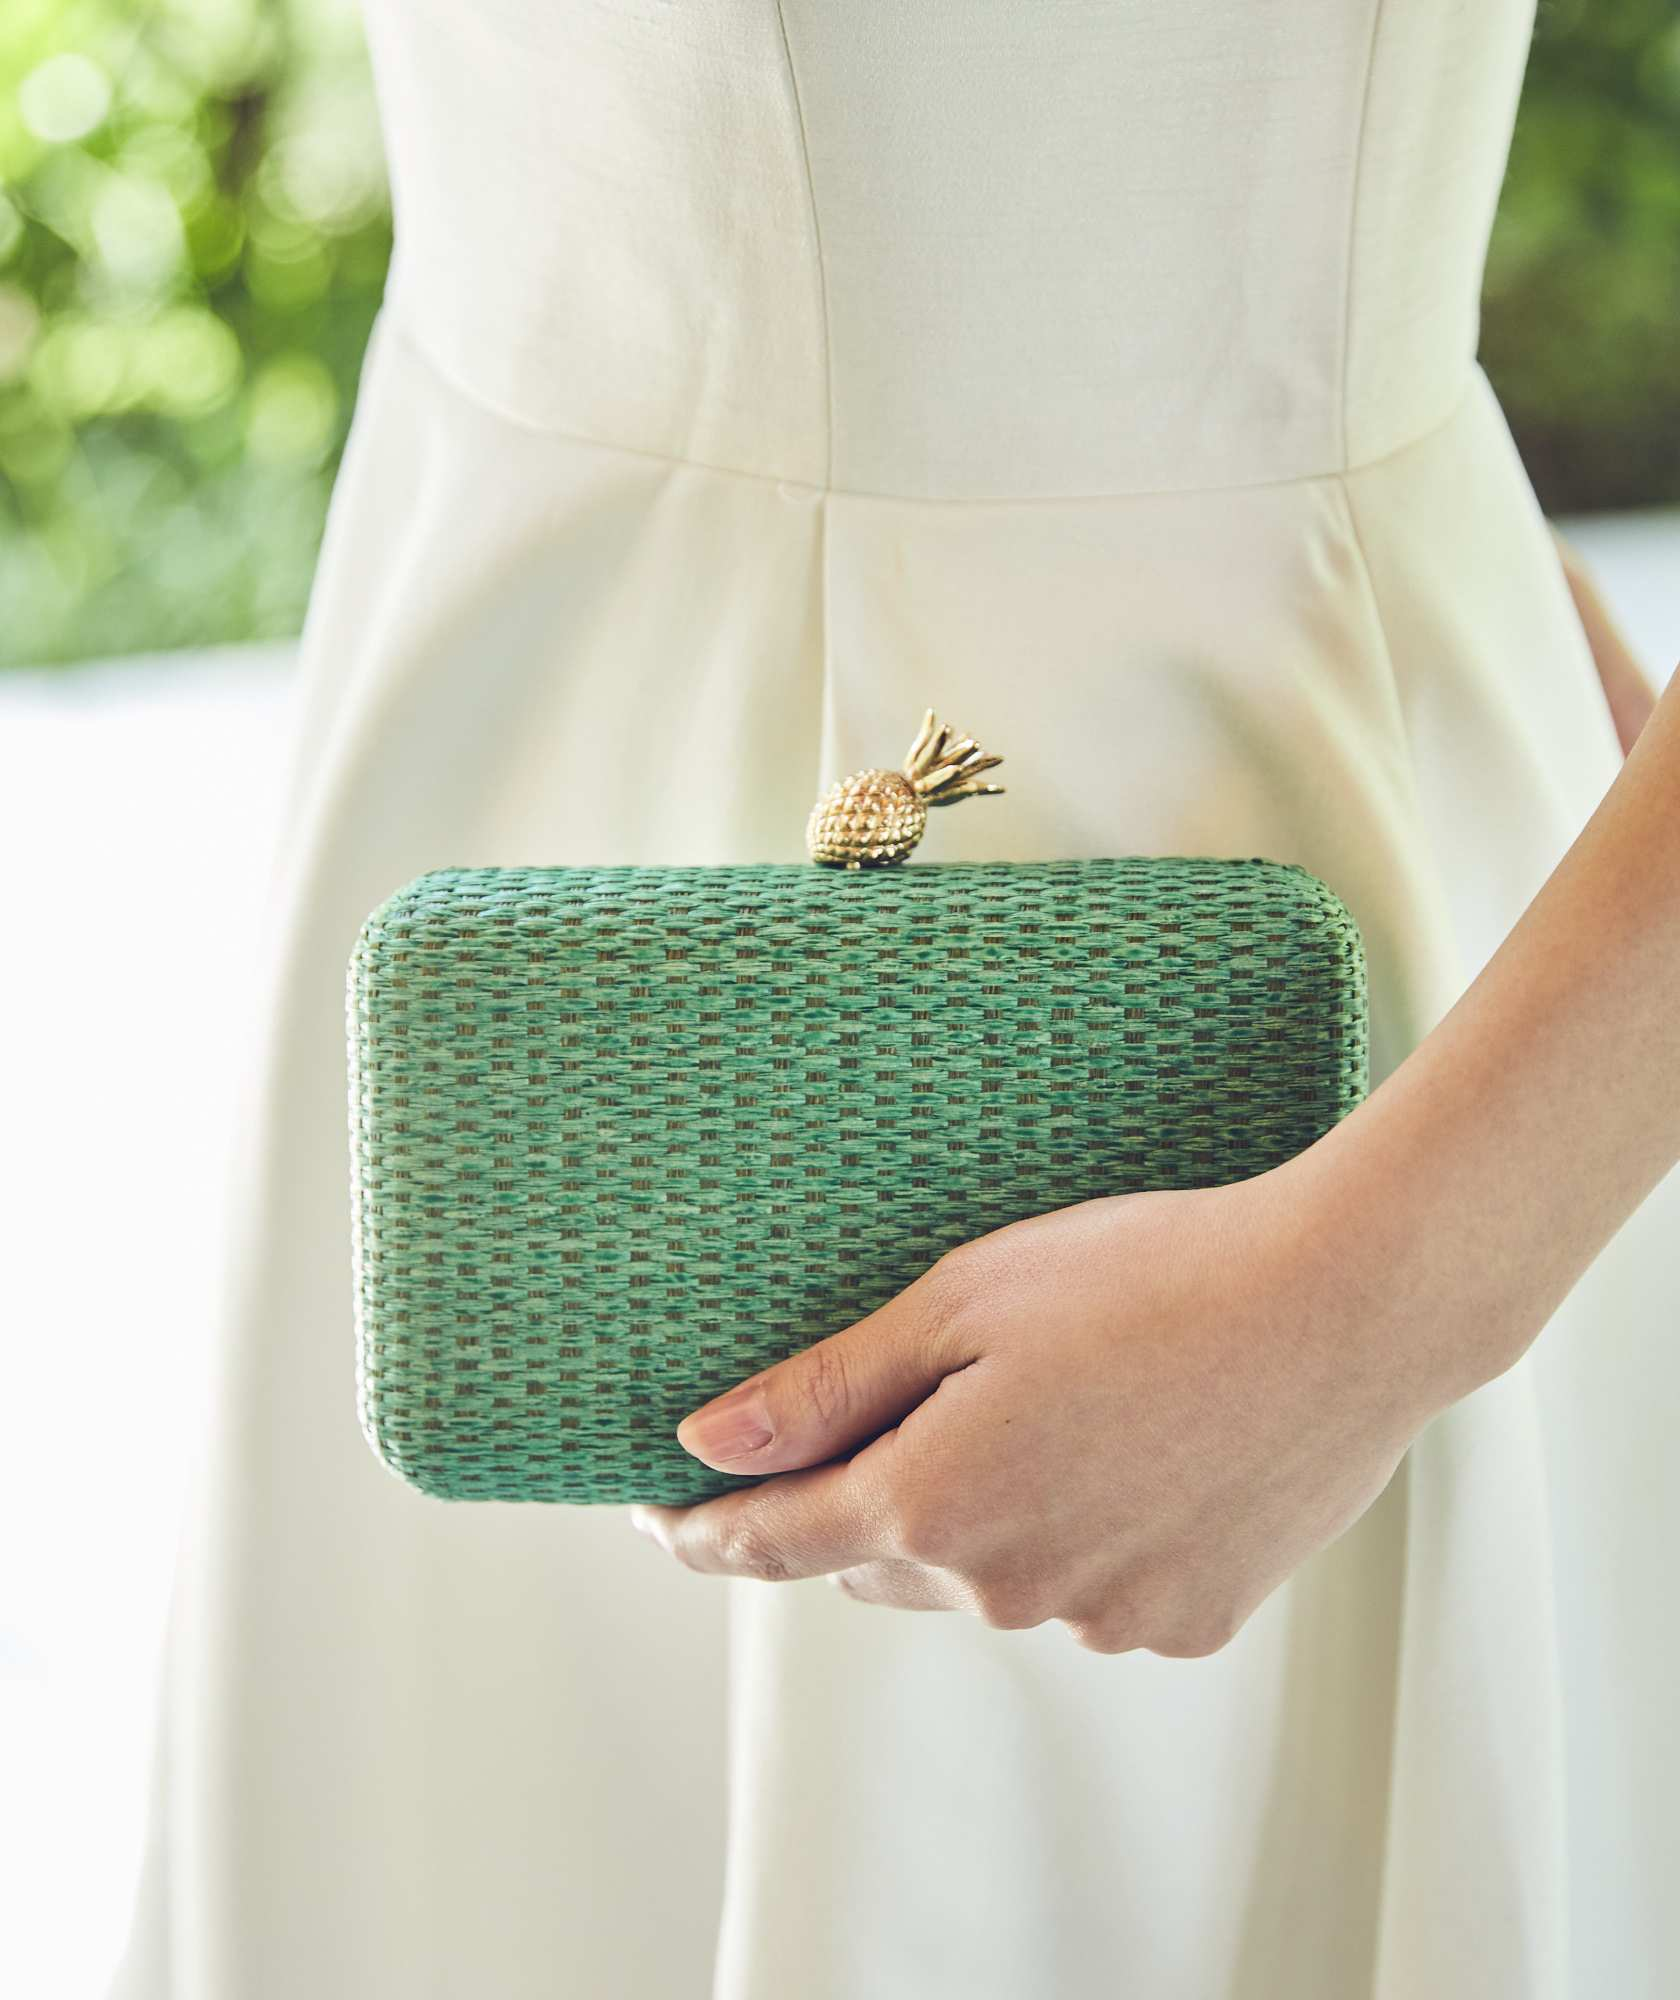 Pineapple green Cluth bag